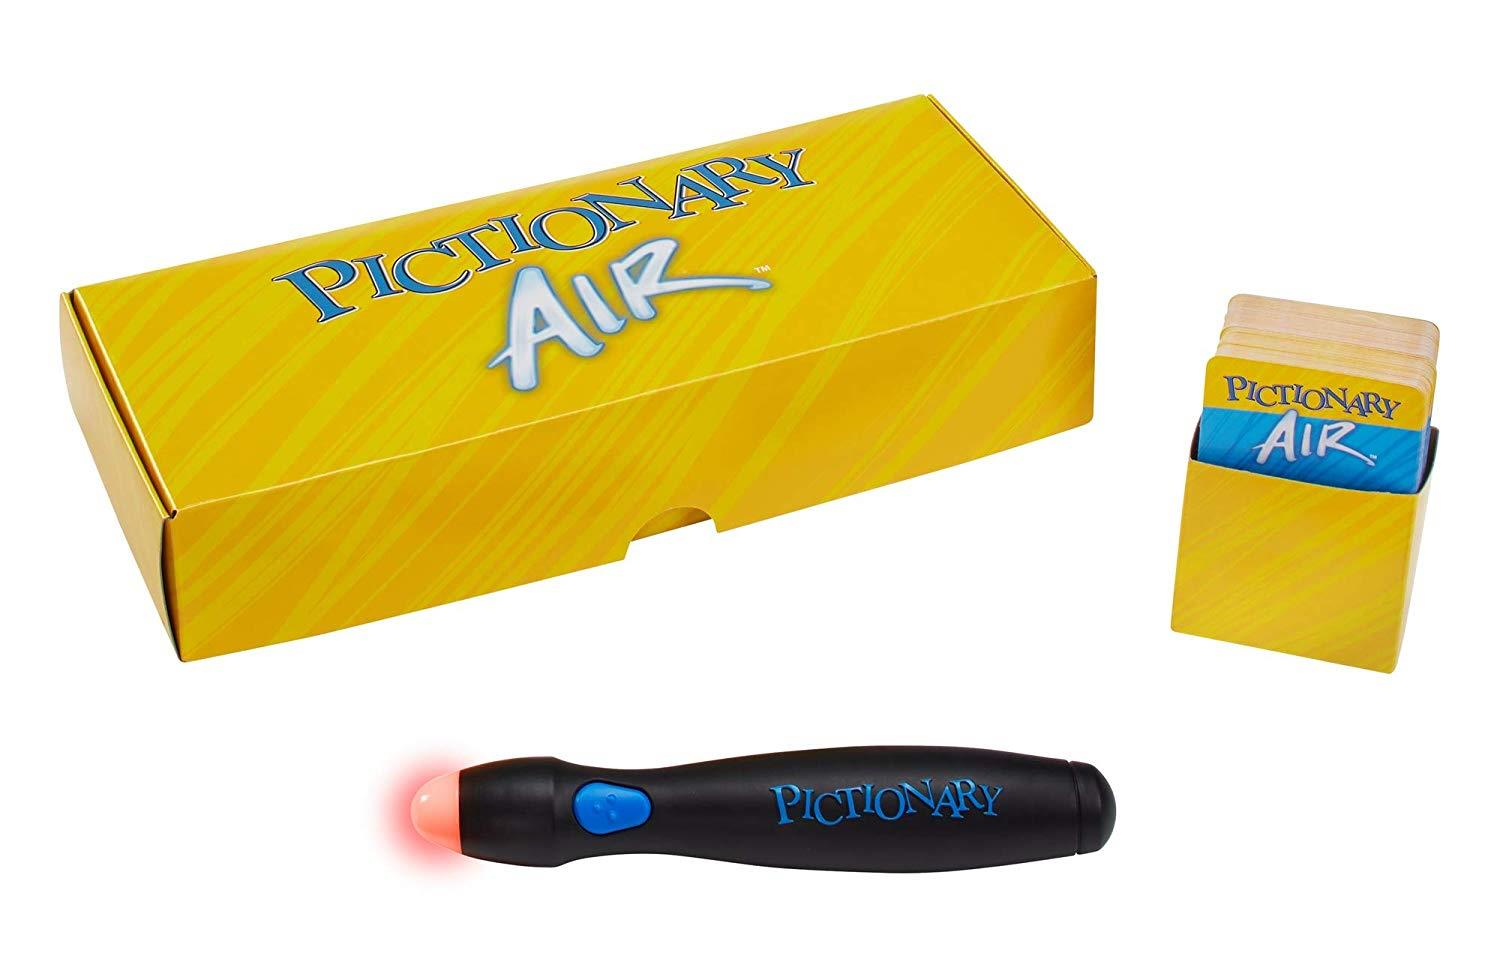 Details about Pictionary Air Family Fun Drawing Game